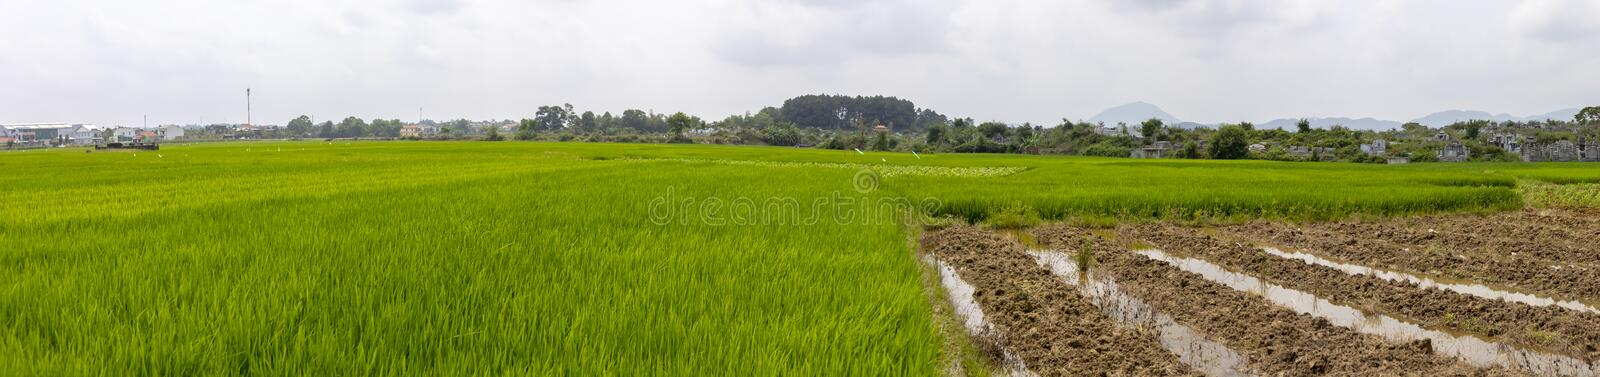 Rice paddy field Hue Vietnam. Panorama of green rice paddy field in countryside in Hue, Vietnam royalty free stock images